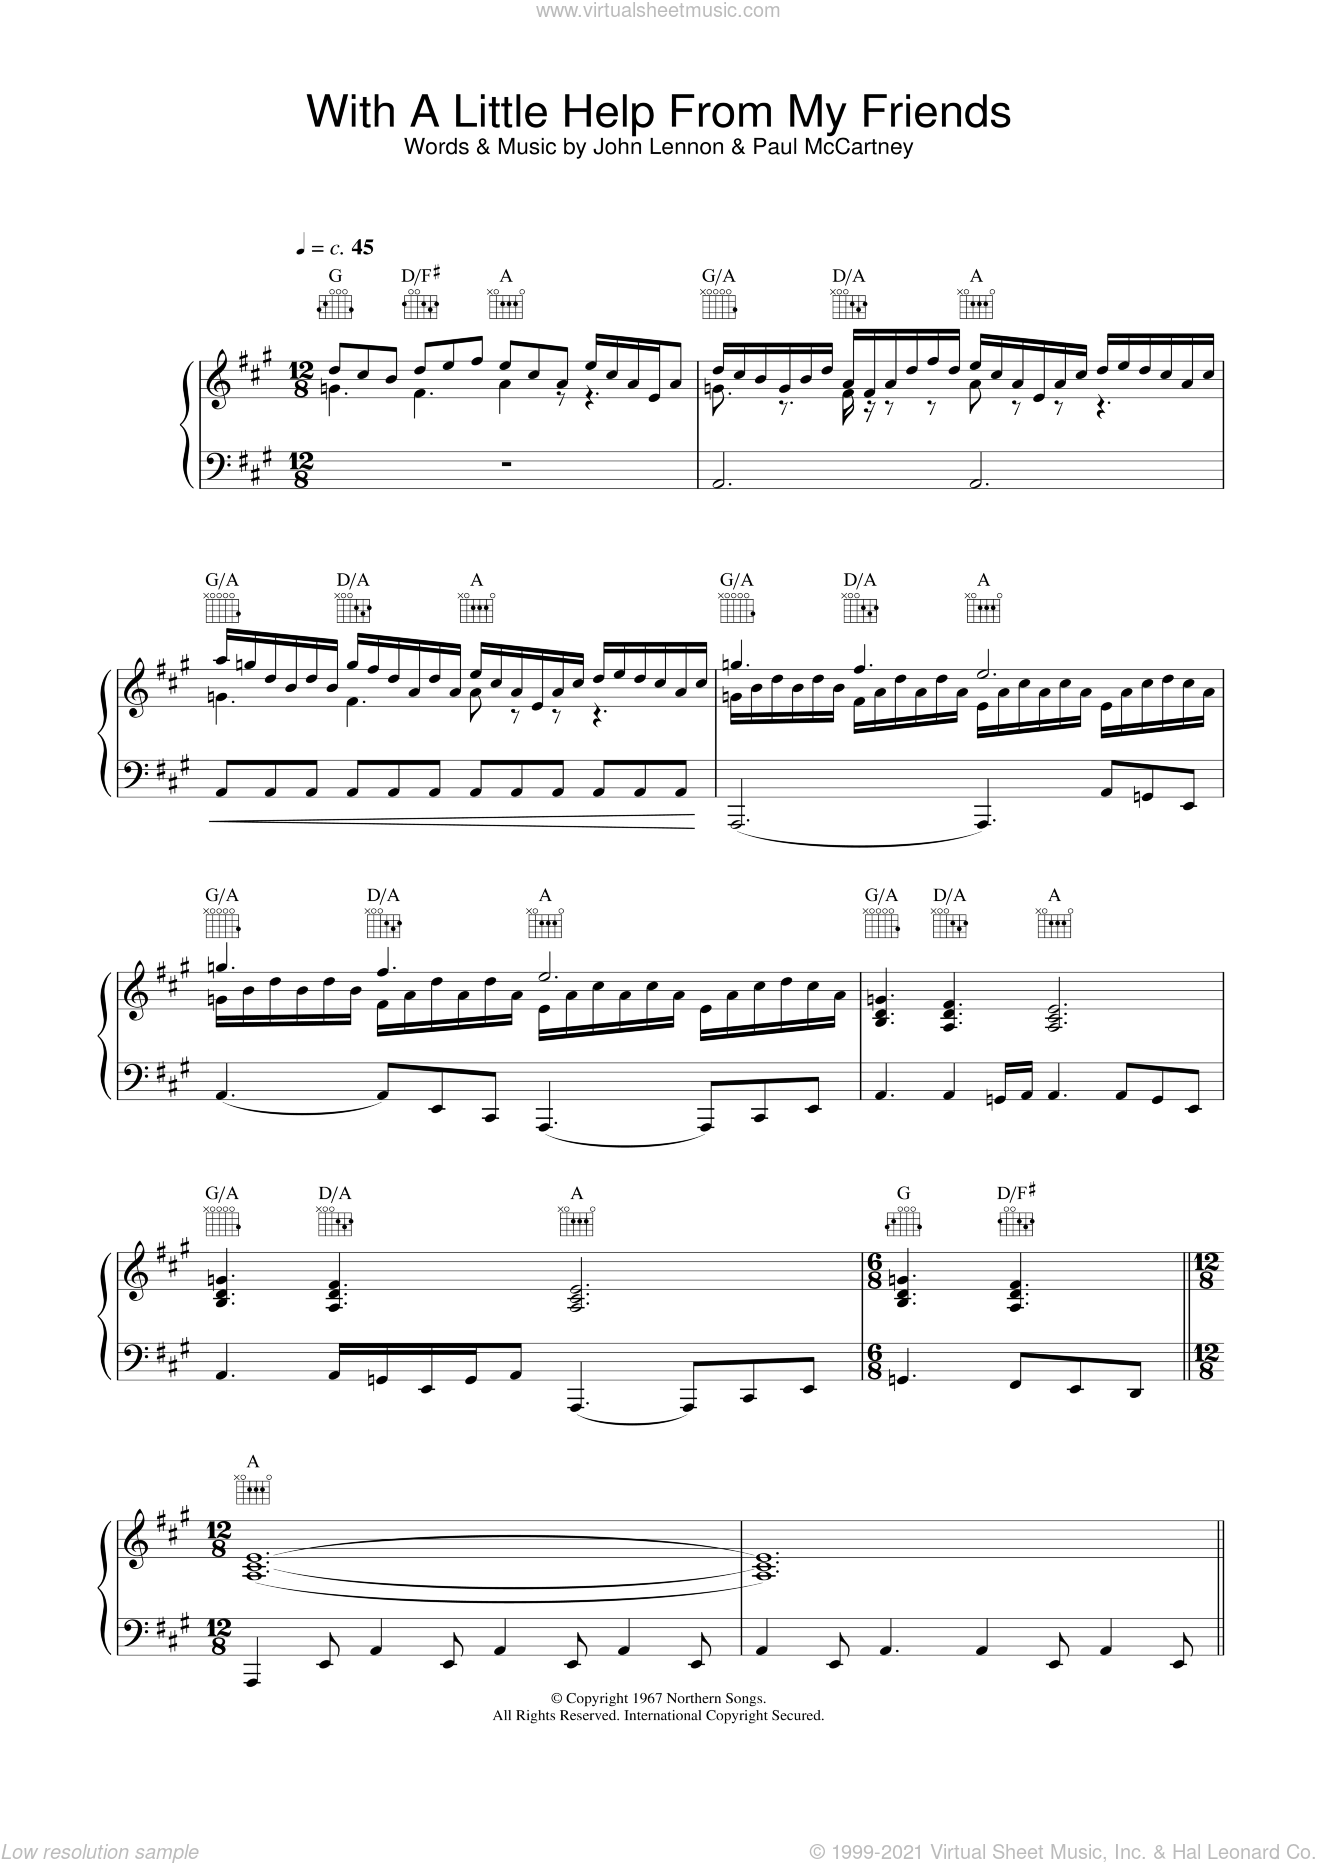 With A Little Help From My Friends sheet music for voice, piano or guitar by Joe Cocker, John Lennon and Paul McCartney, intermediate skill level